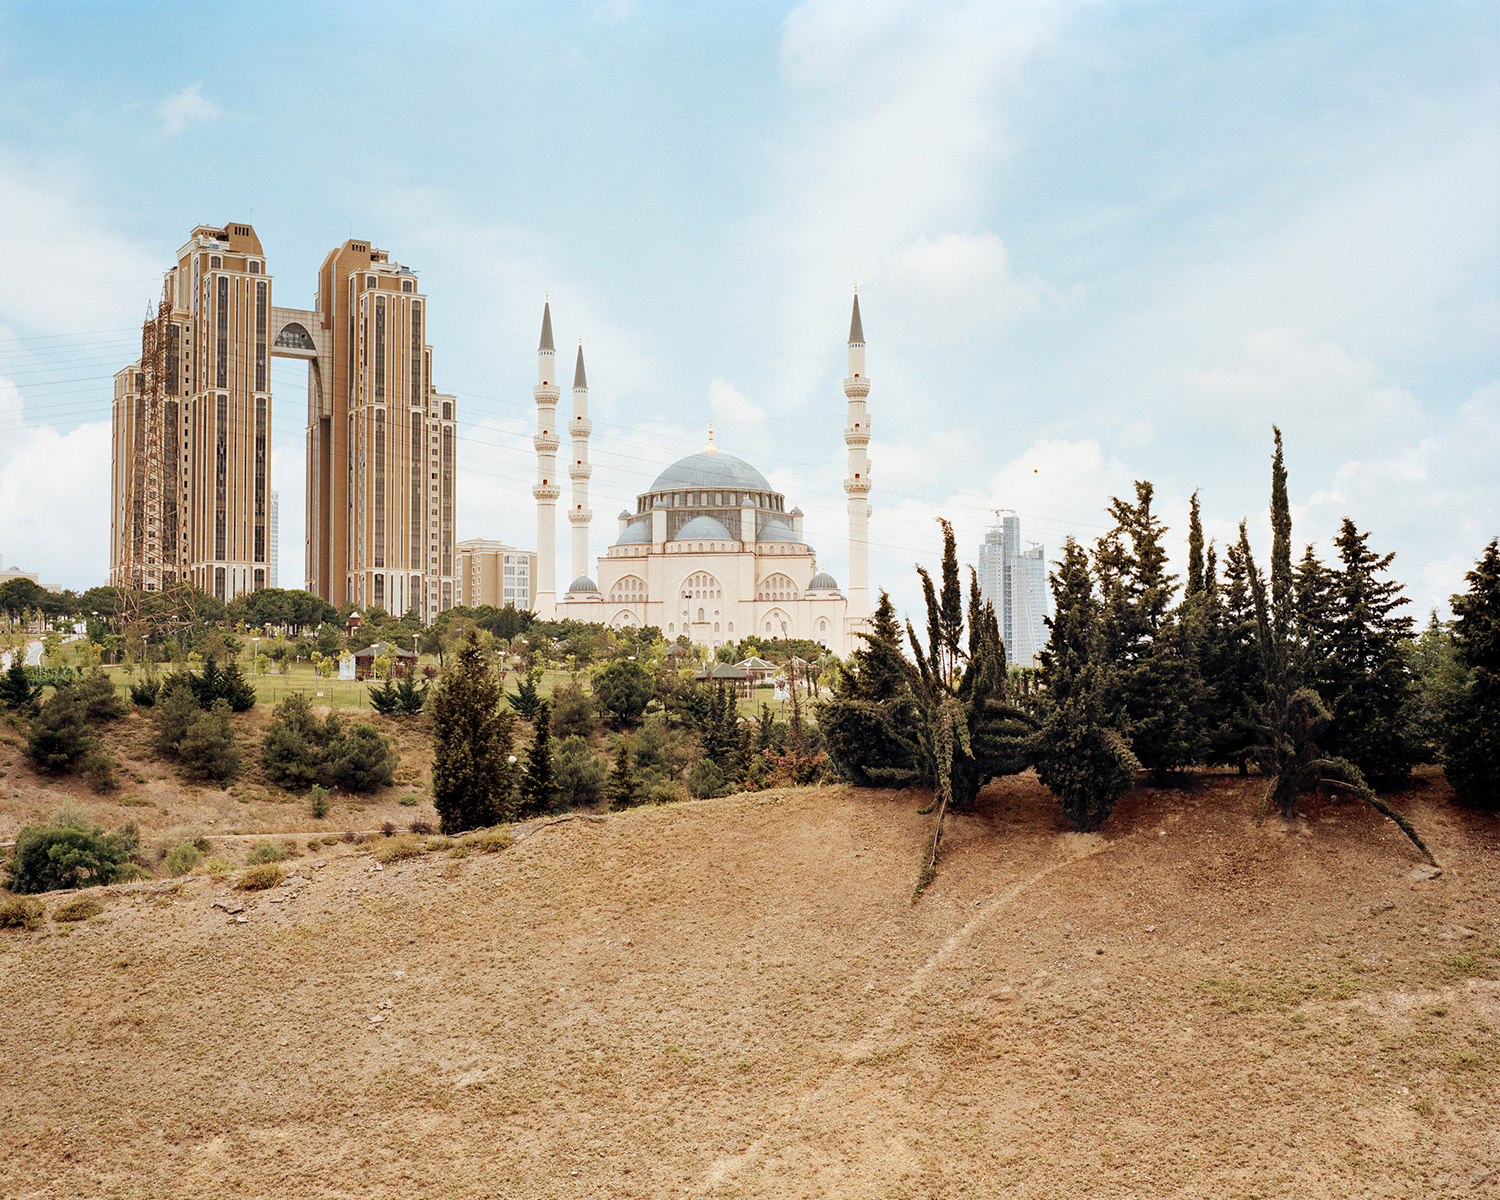 "© Norman Behrendt, from the series ""Brave New Turkey"", Atasehir Mimar-Sinan-Camii, realized 2012, Atasehir, Istanbul"